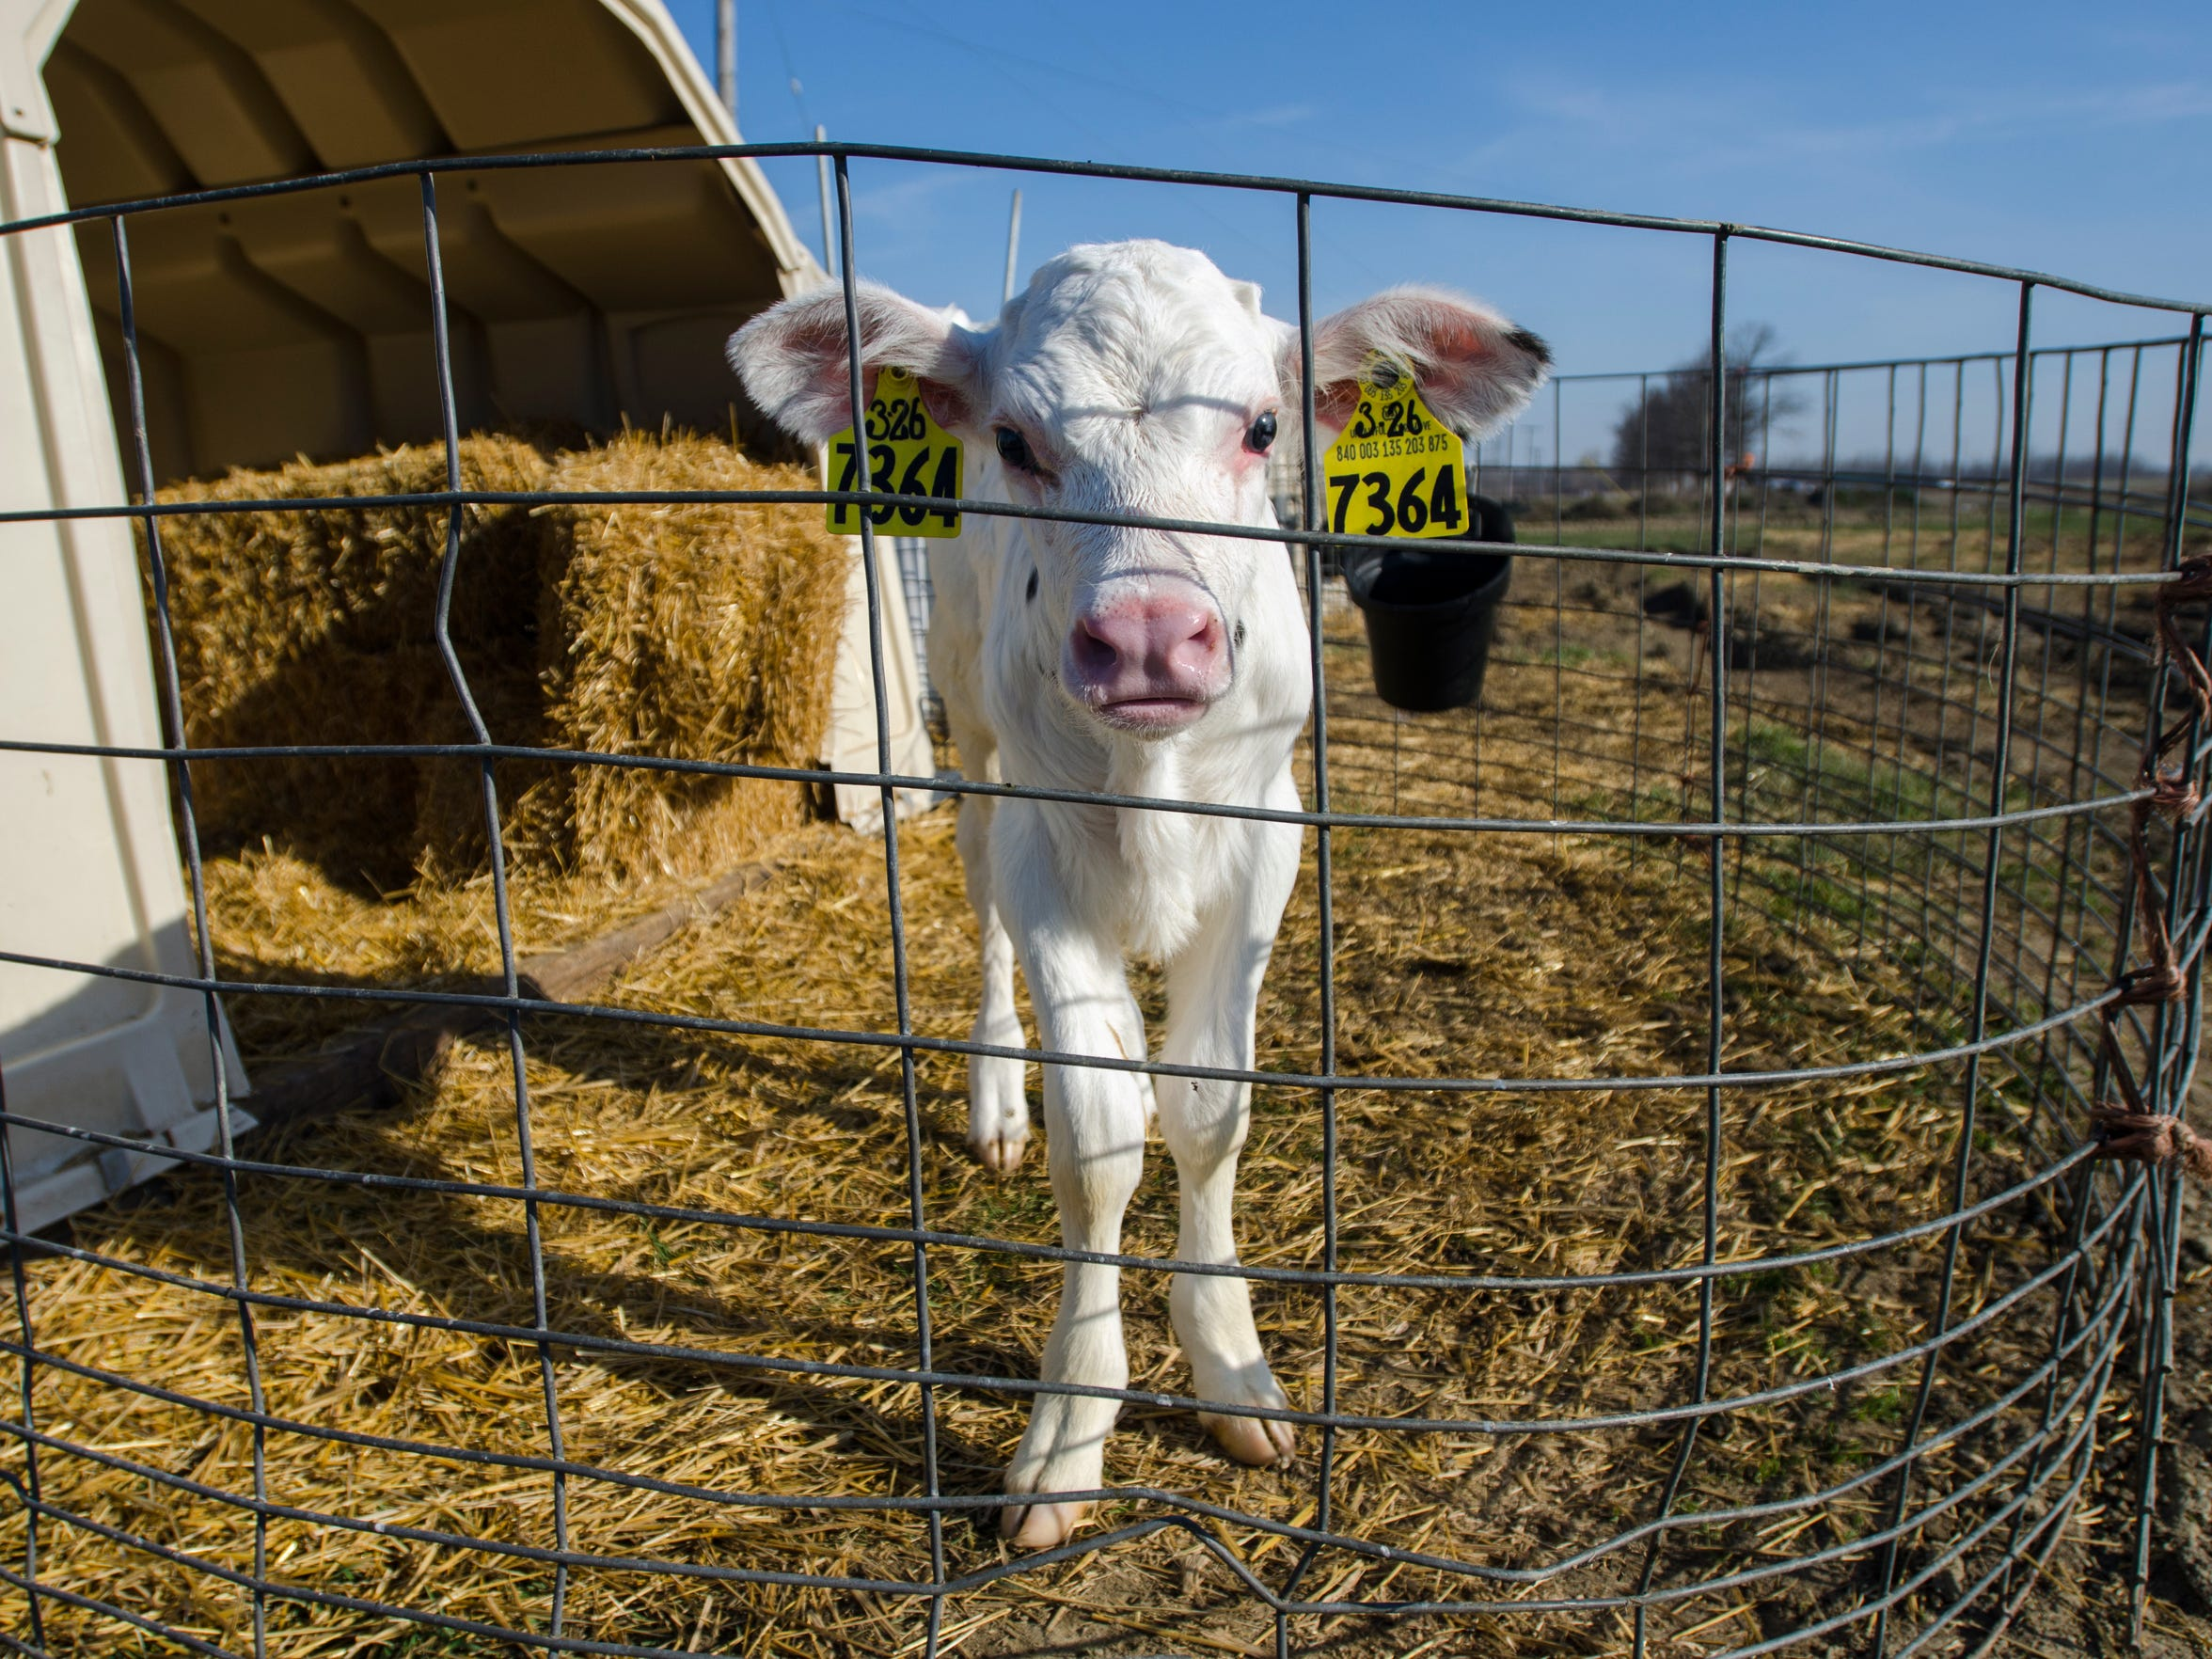 A newborn calf stands in her pen Monday, April 18, at the Bob Shinn Farm in Croswell.